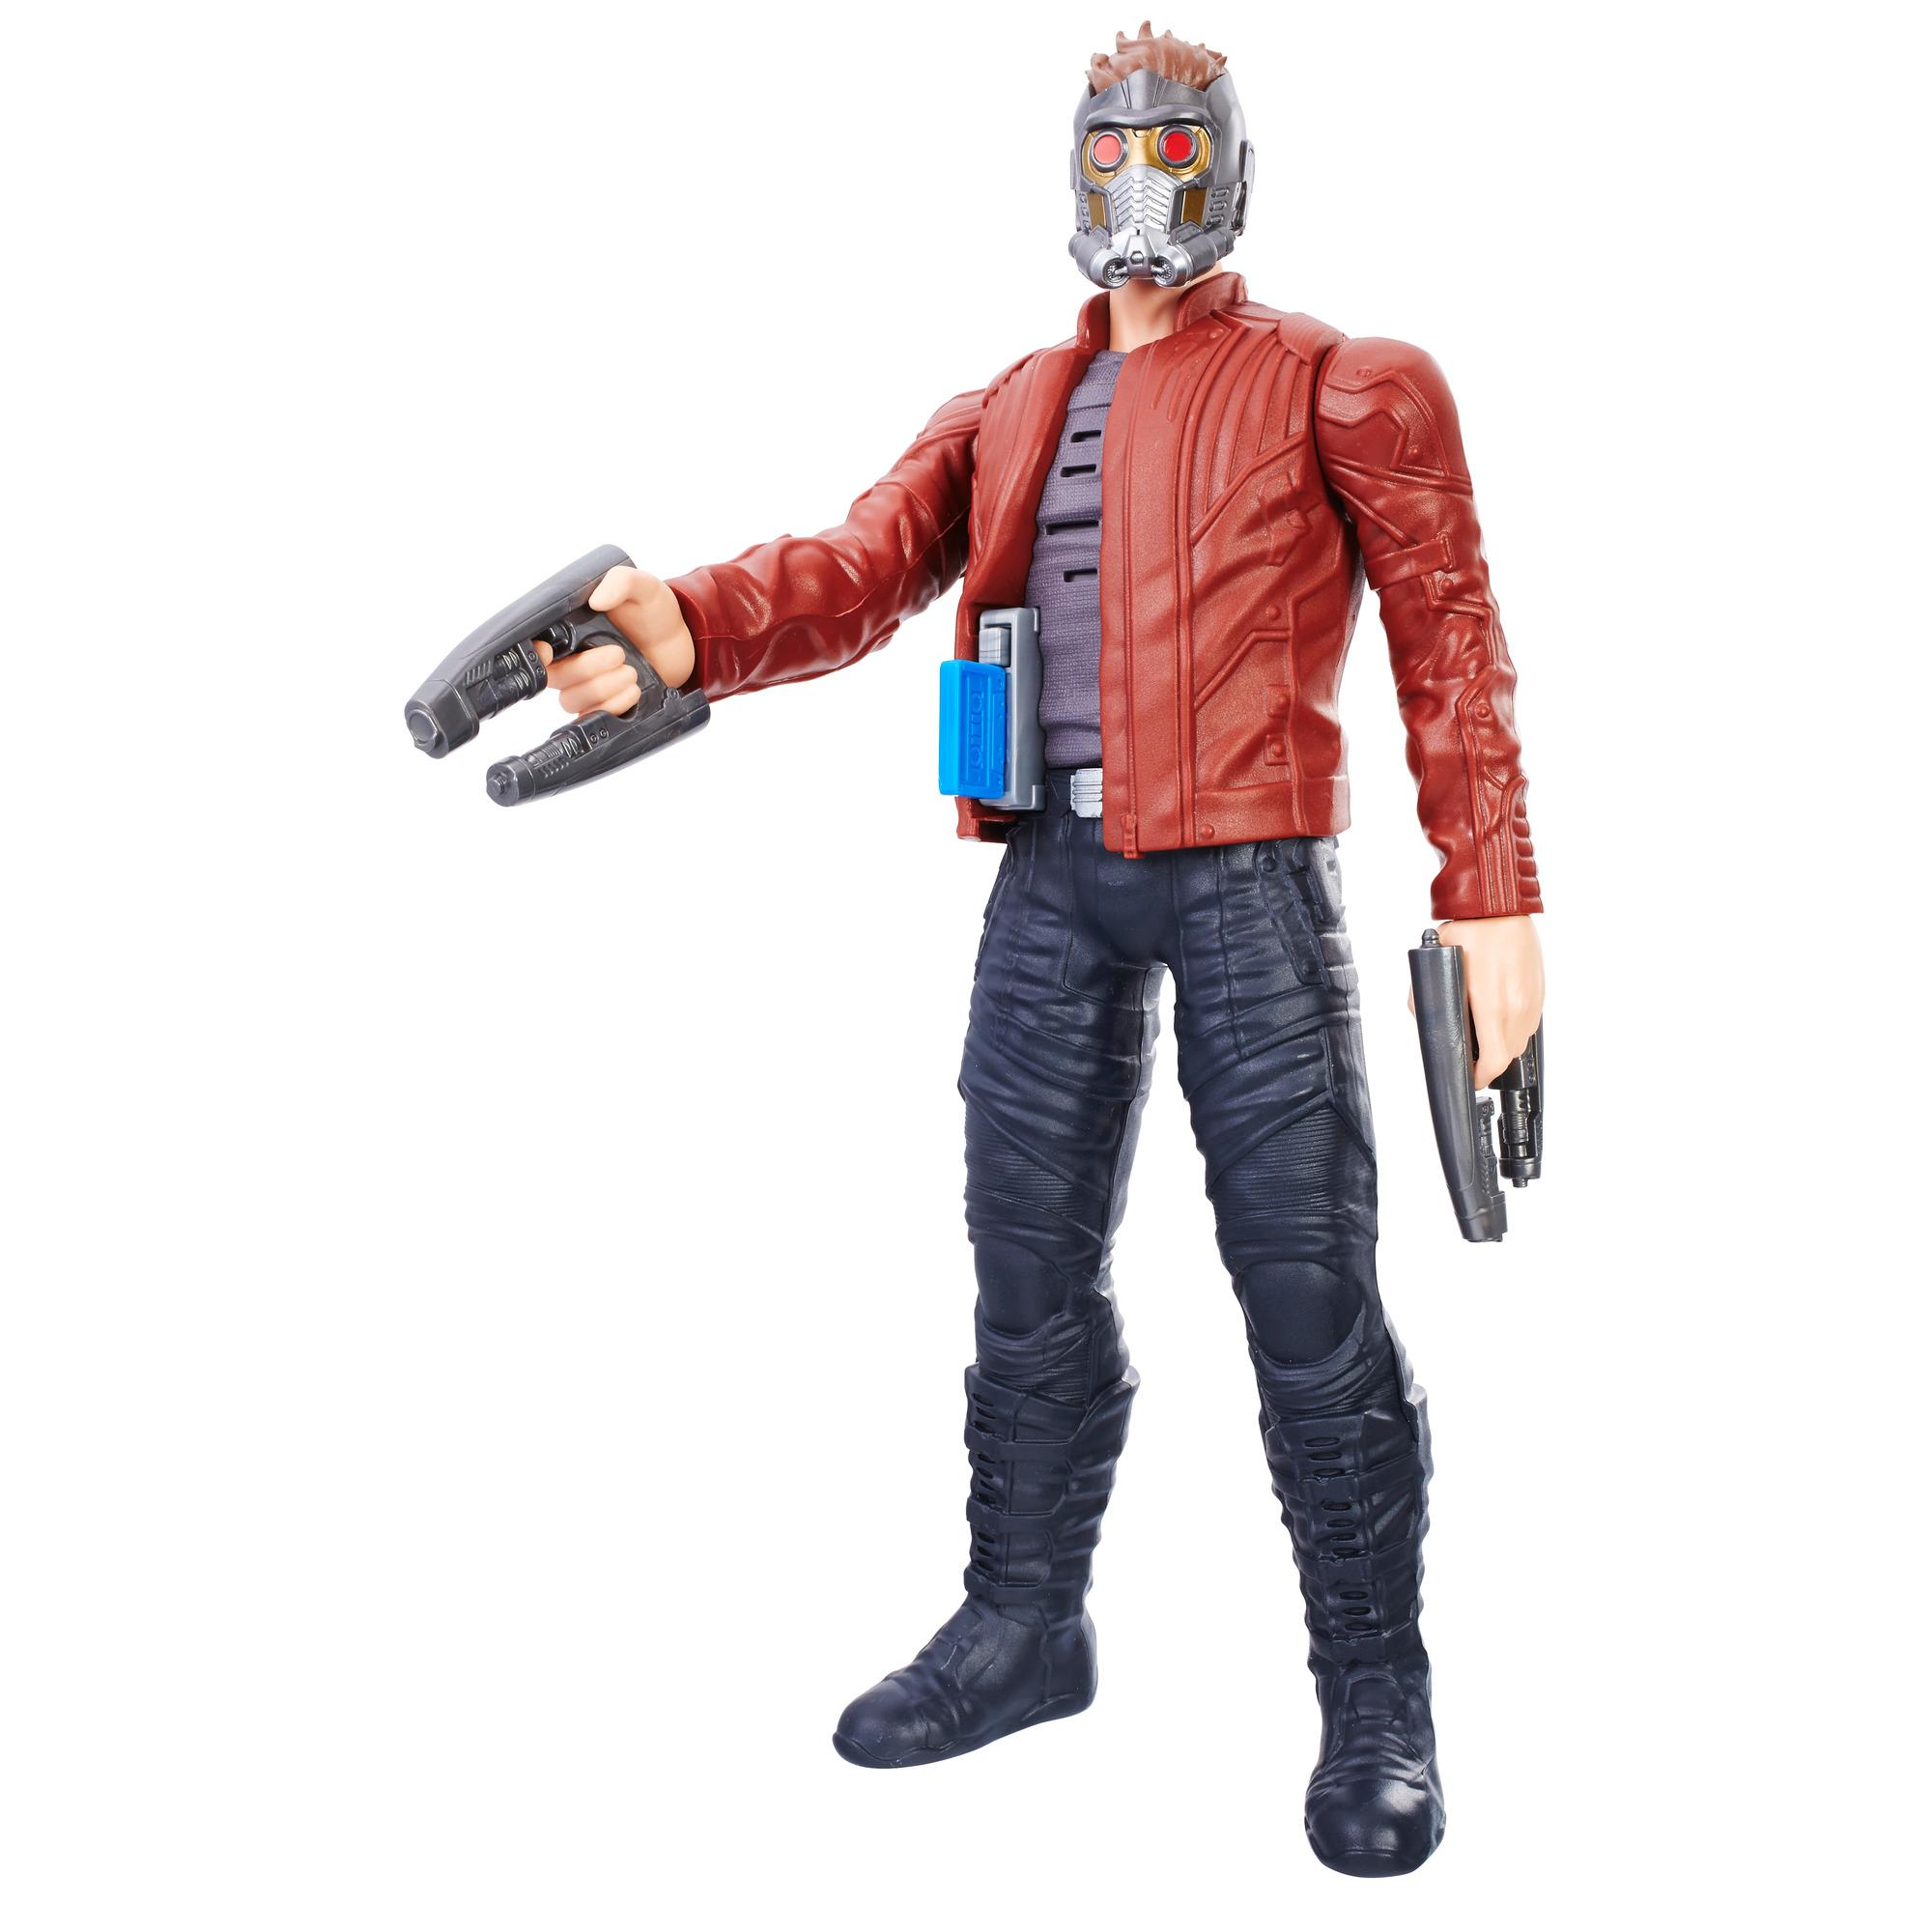 Marvel Guardians of the Galaxy Star Lord Elettronico